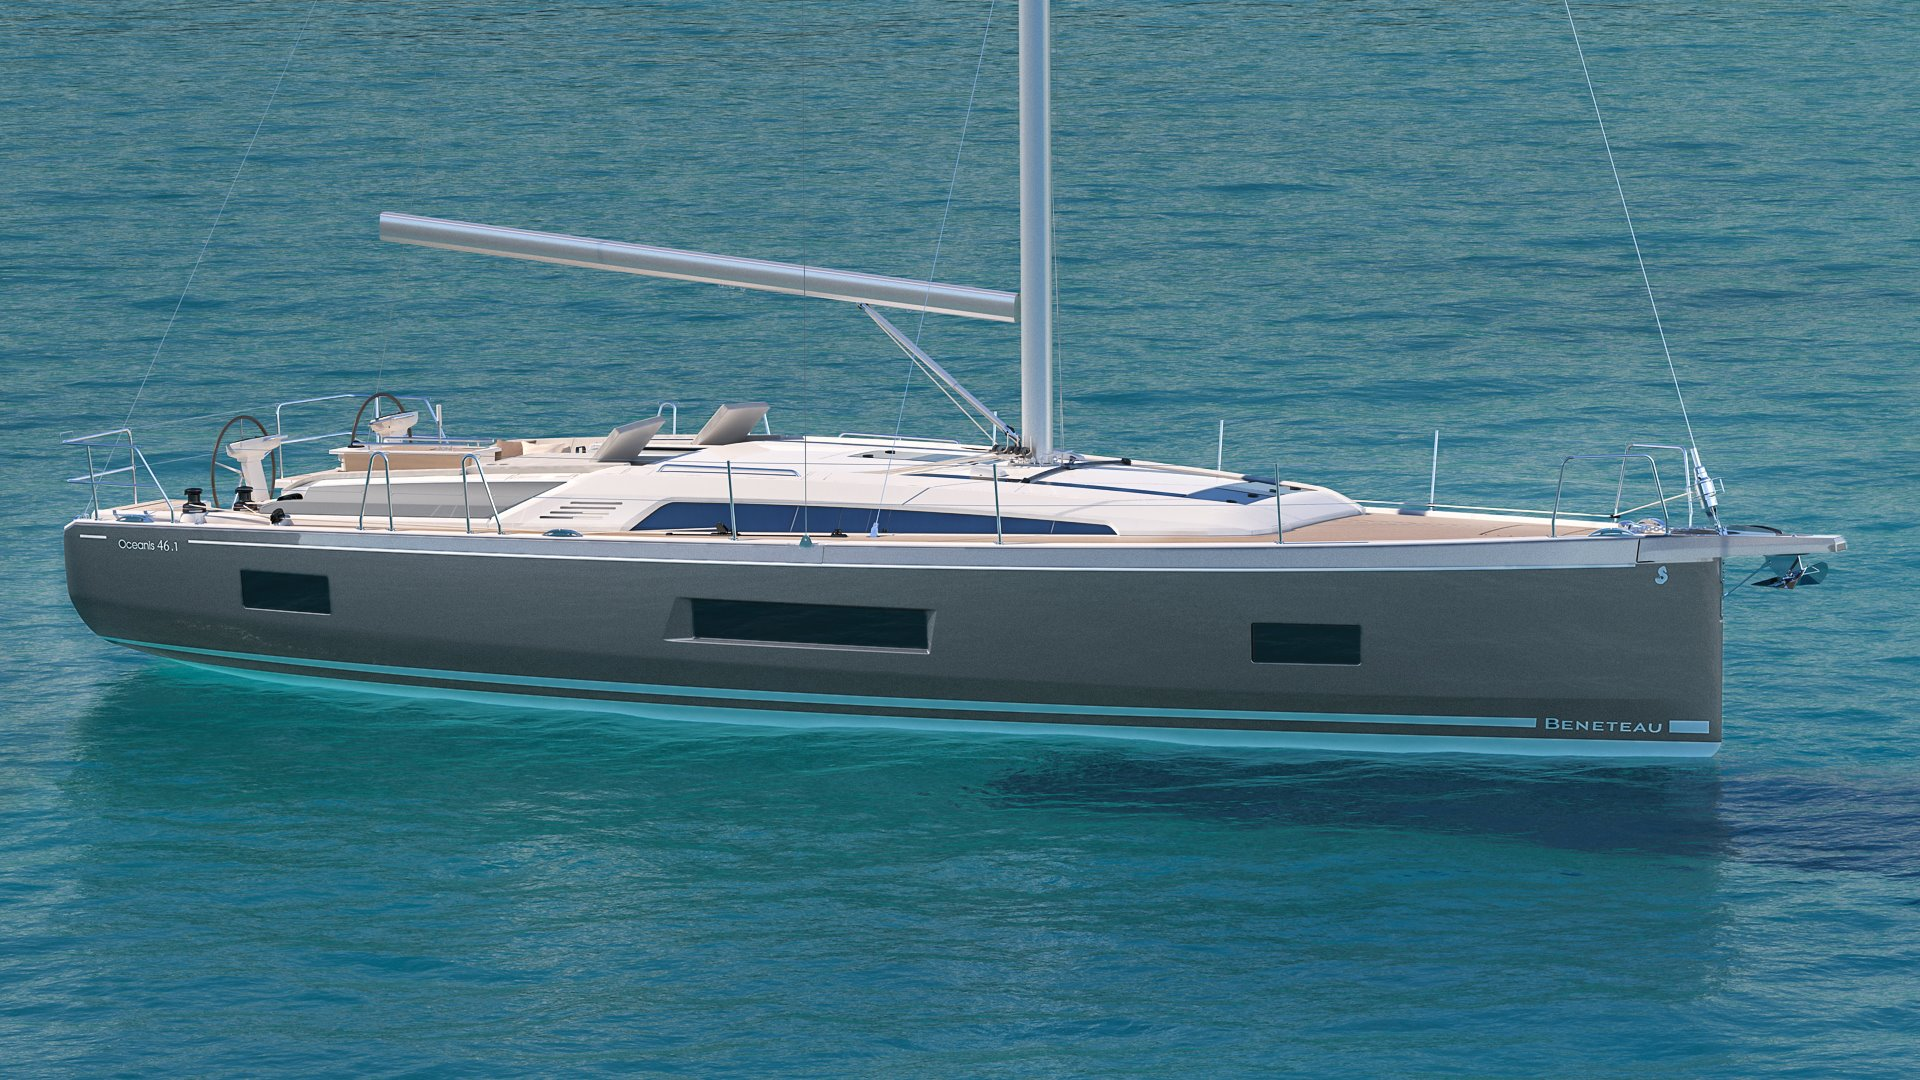 The New Beneteau Oceanis 46.1, shaping the future of a bestseller